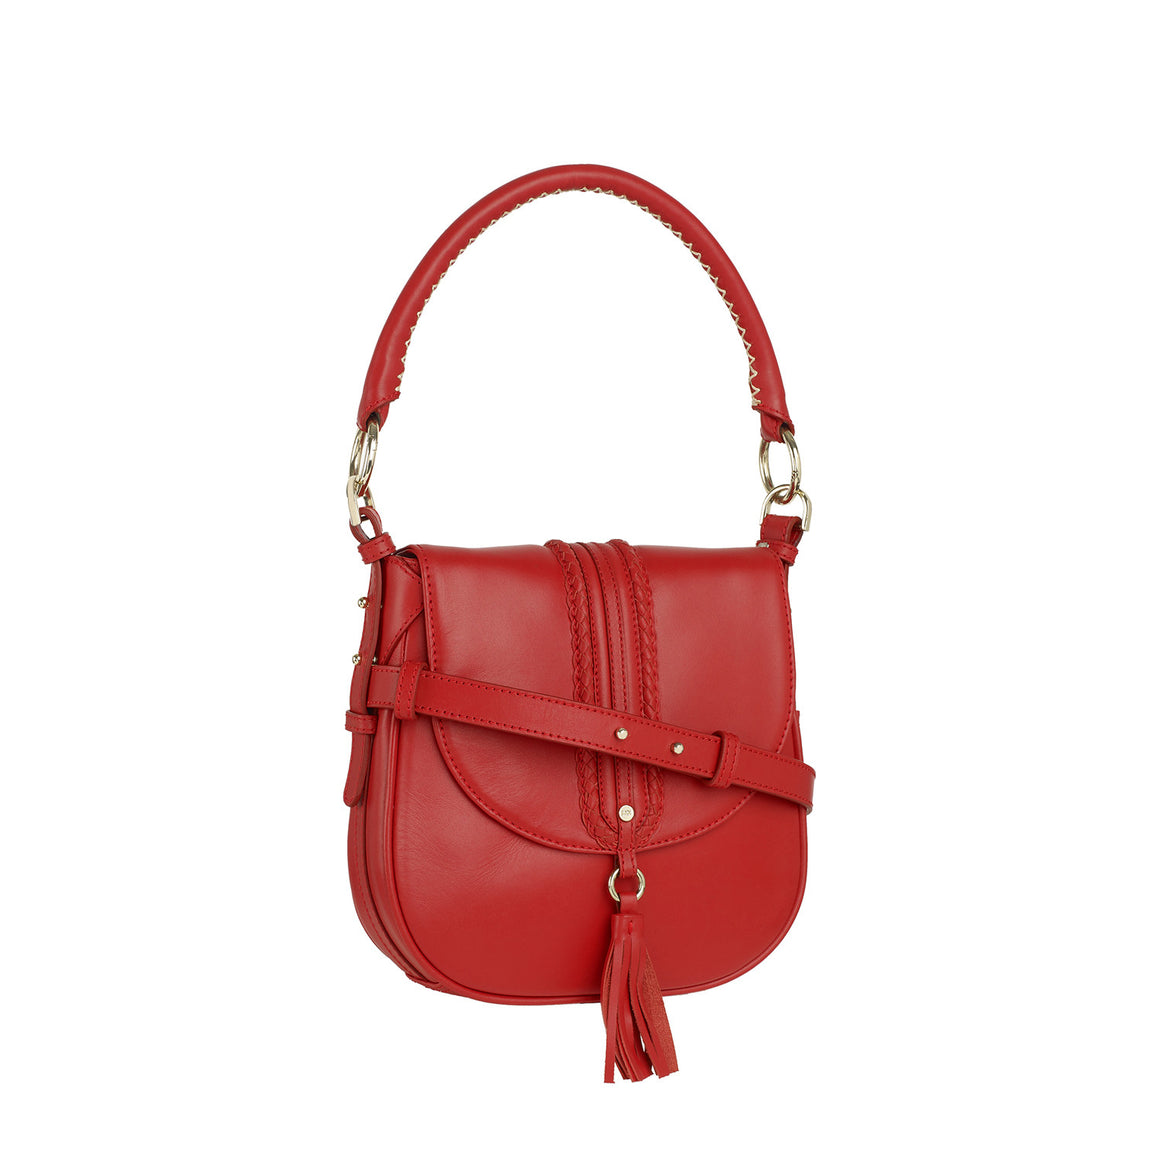 SB 0002 - TOHL GYPSY ROSE WOMEN'S HAND BAG - SPICE RED